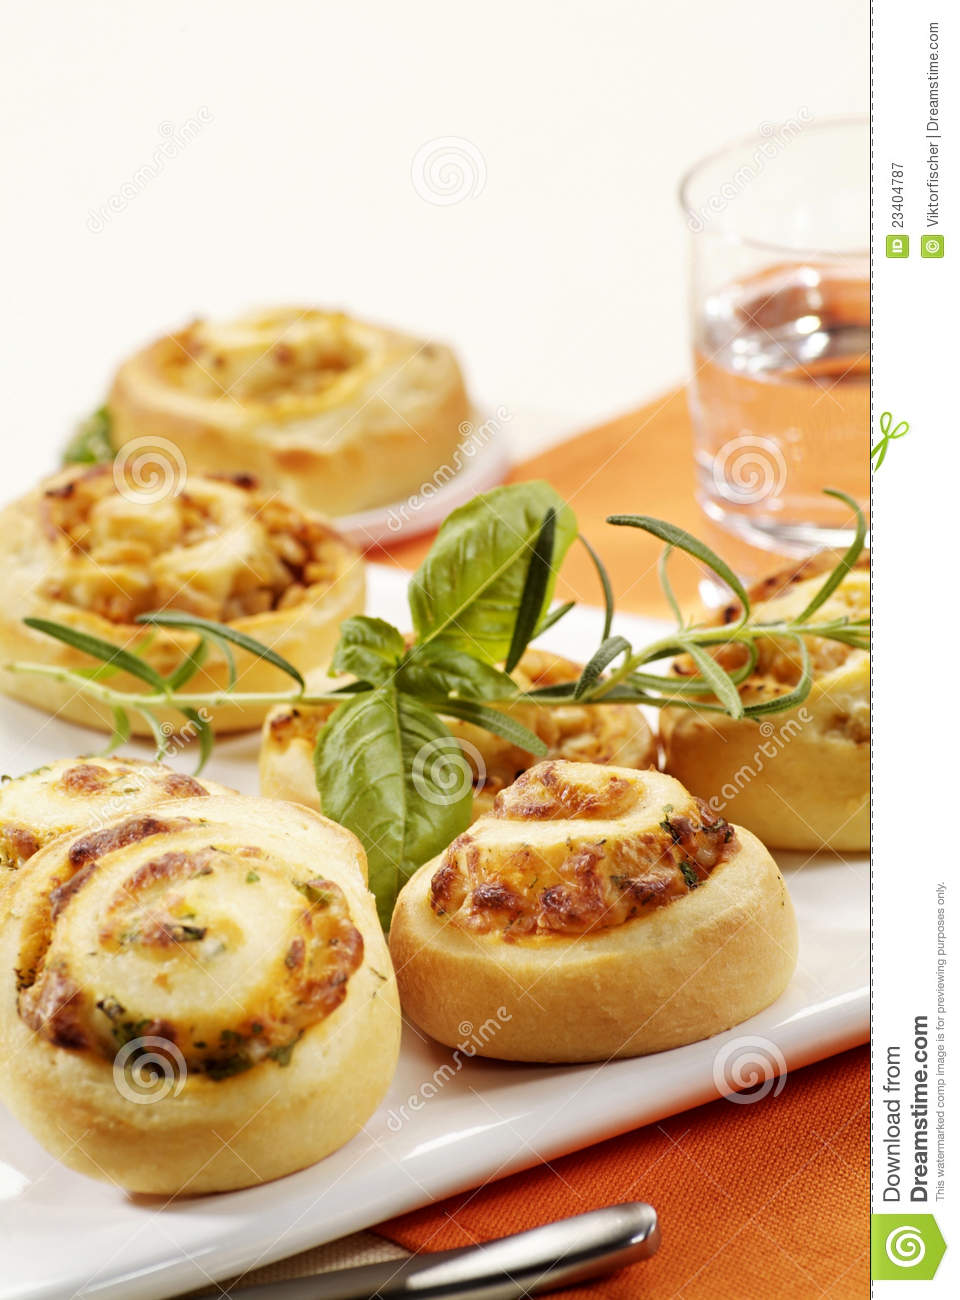 Puff pastry swirls with herb filling